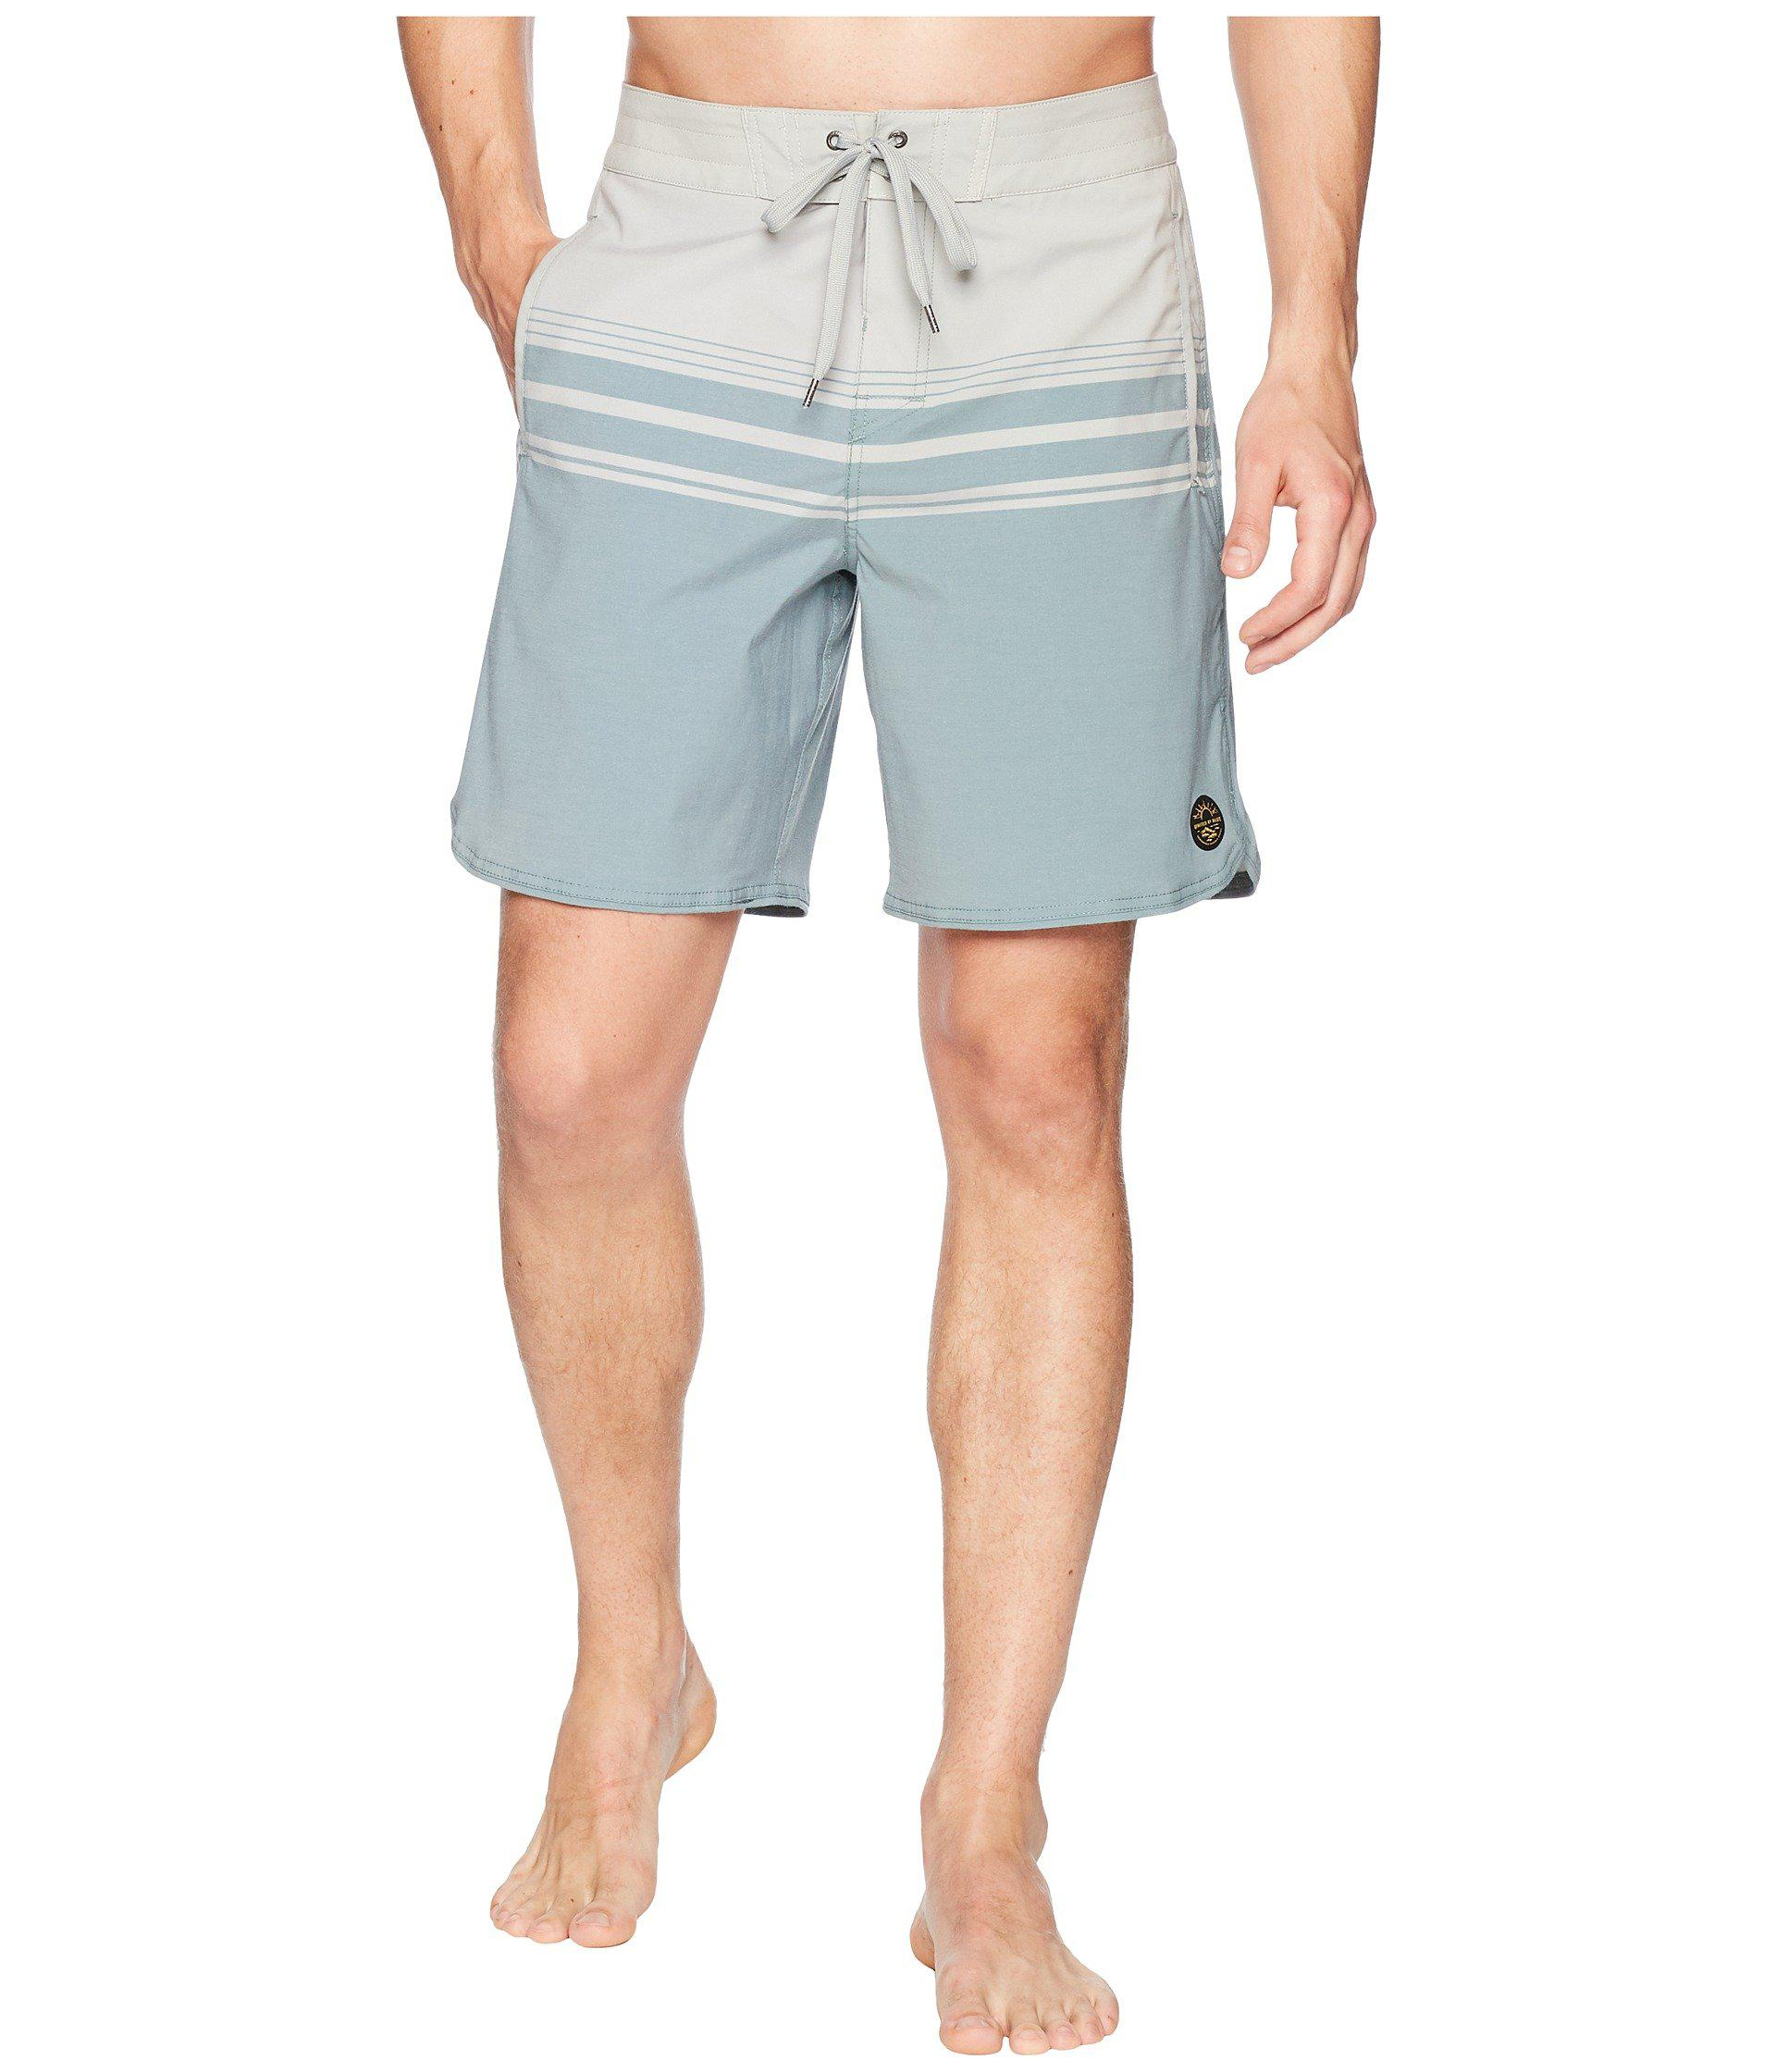 985fe66c49 Lyst - United By Blue Backwater Scallop Boardshorts in Gray for Men ...